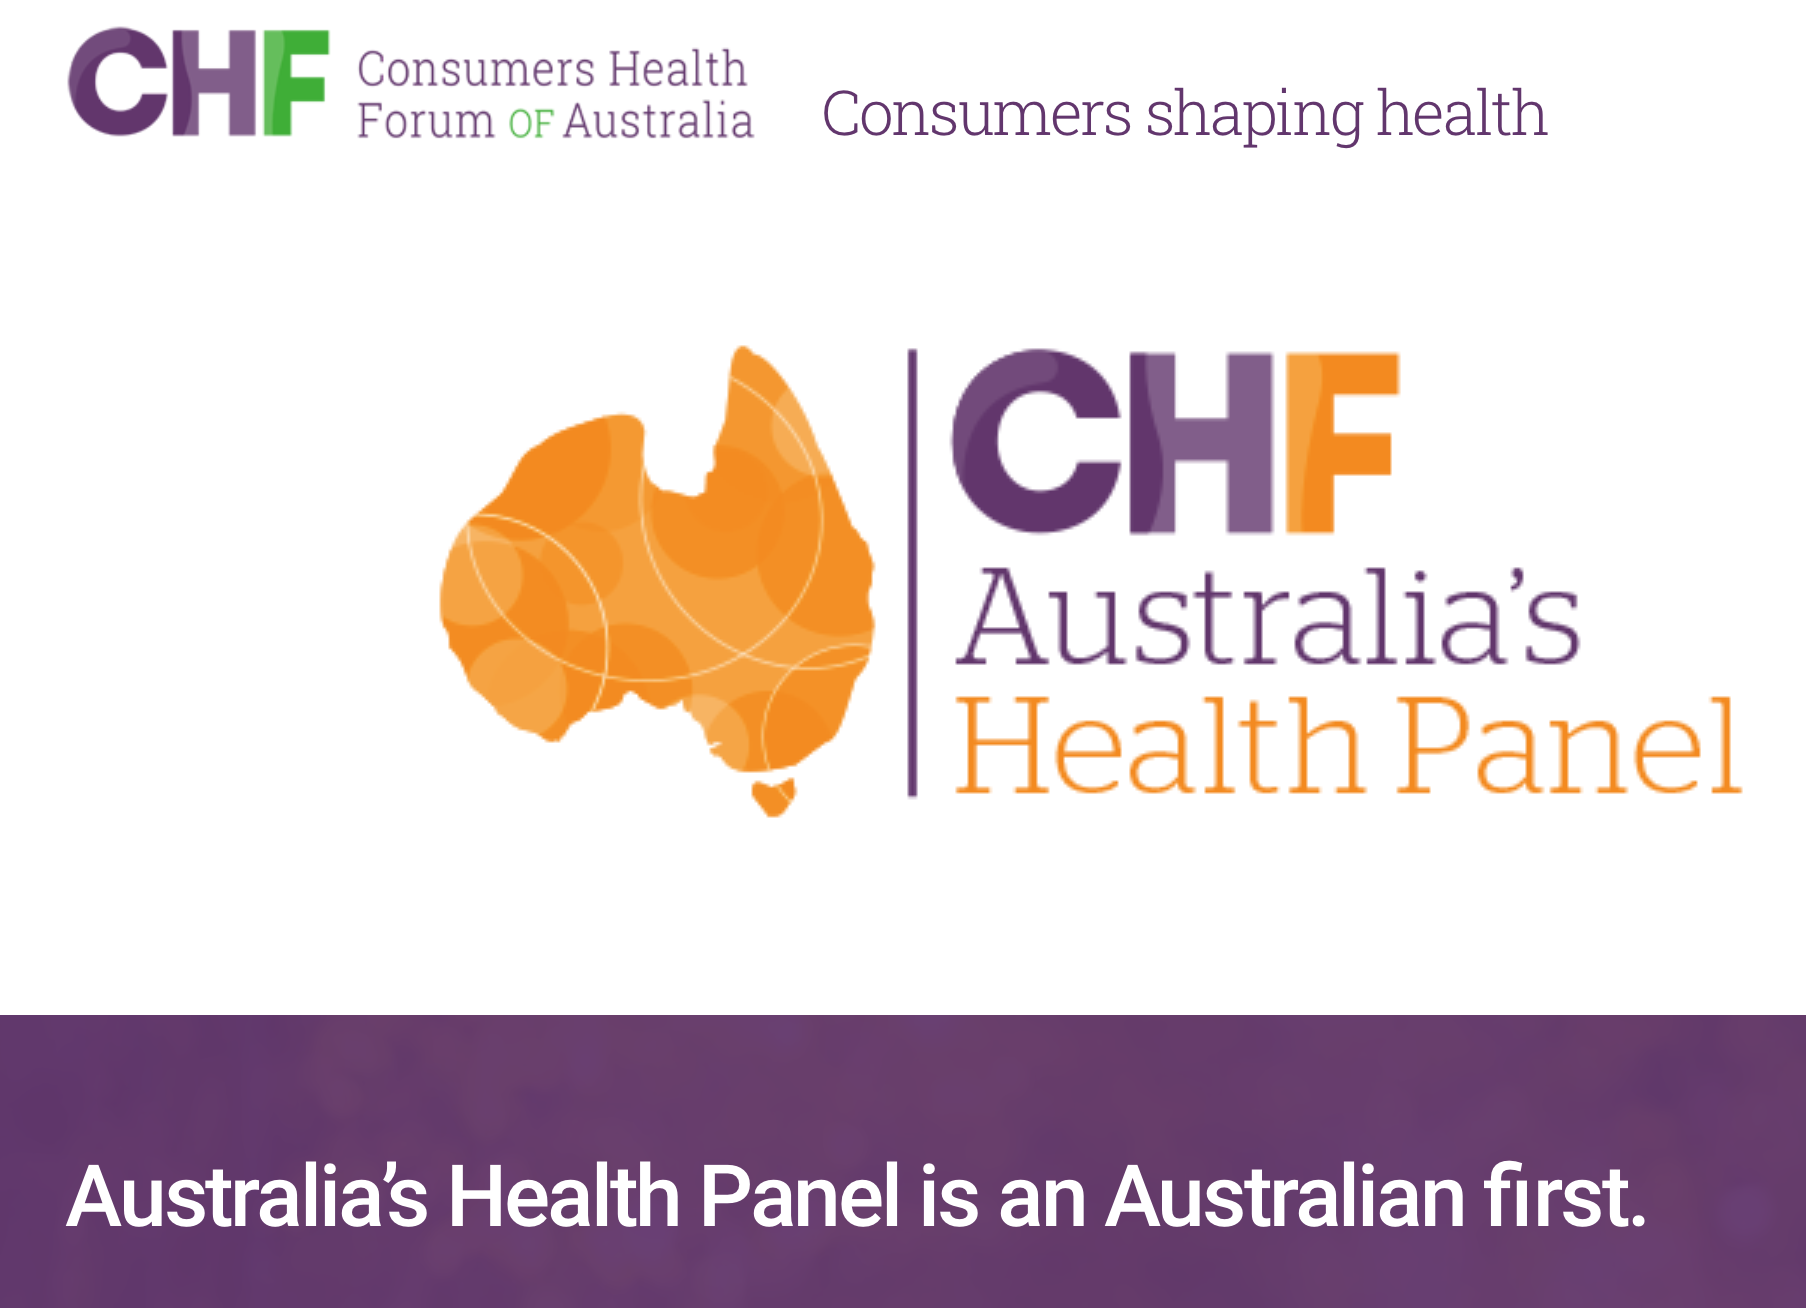 Sign up to Australia's Health Panel and help shape a healthier future